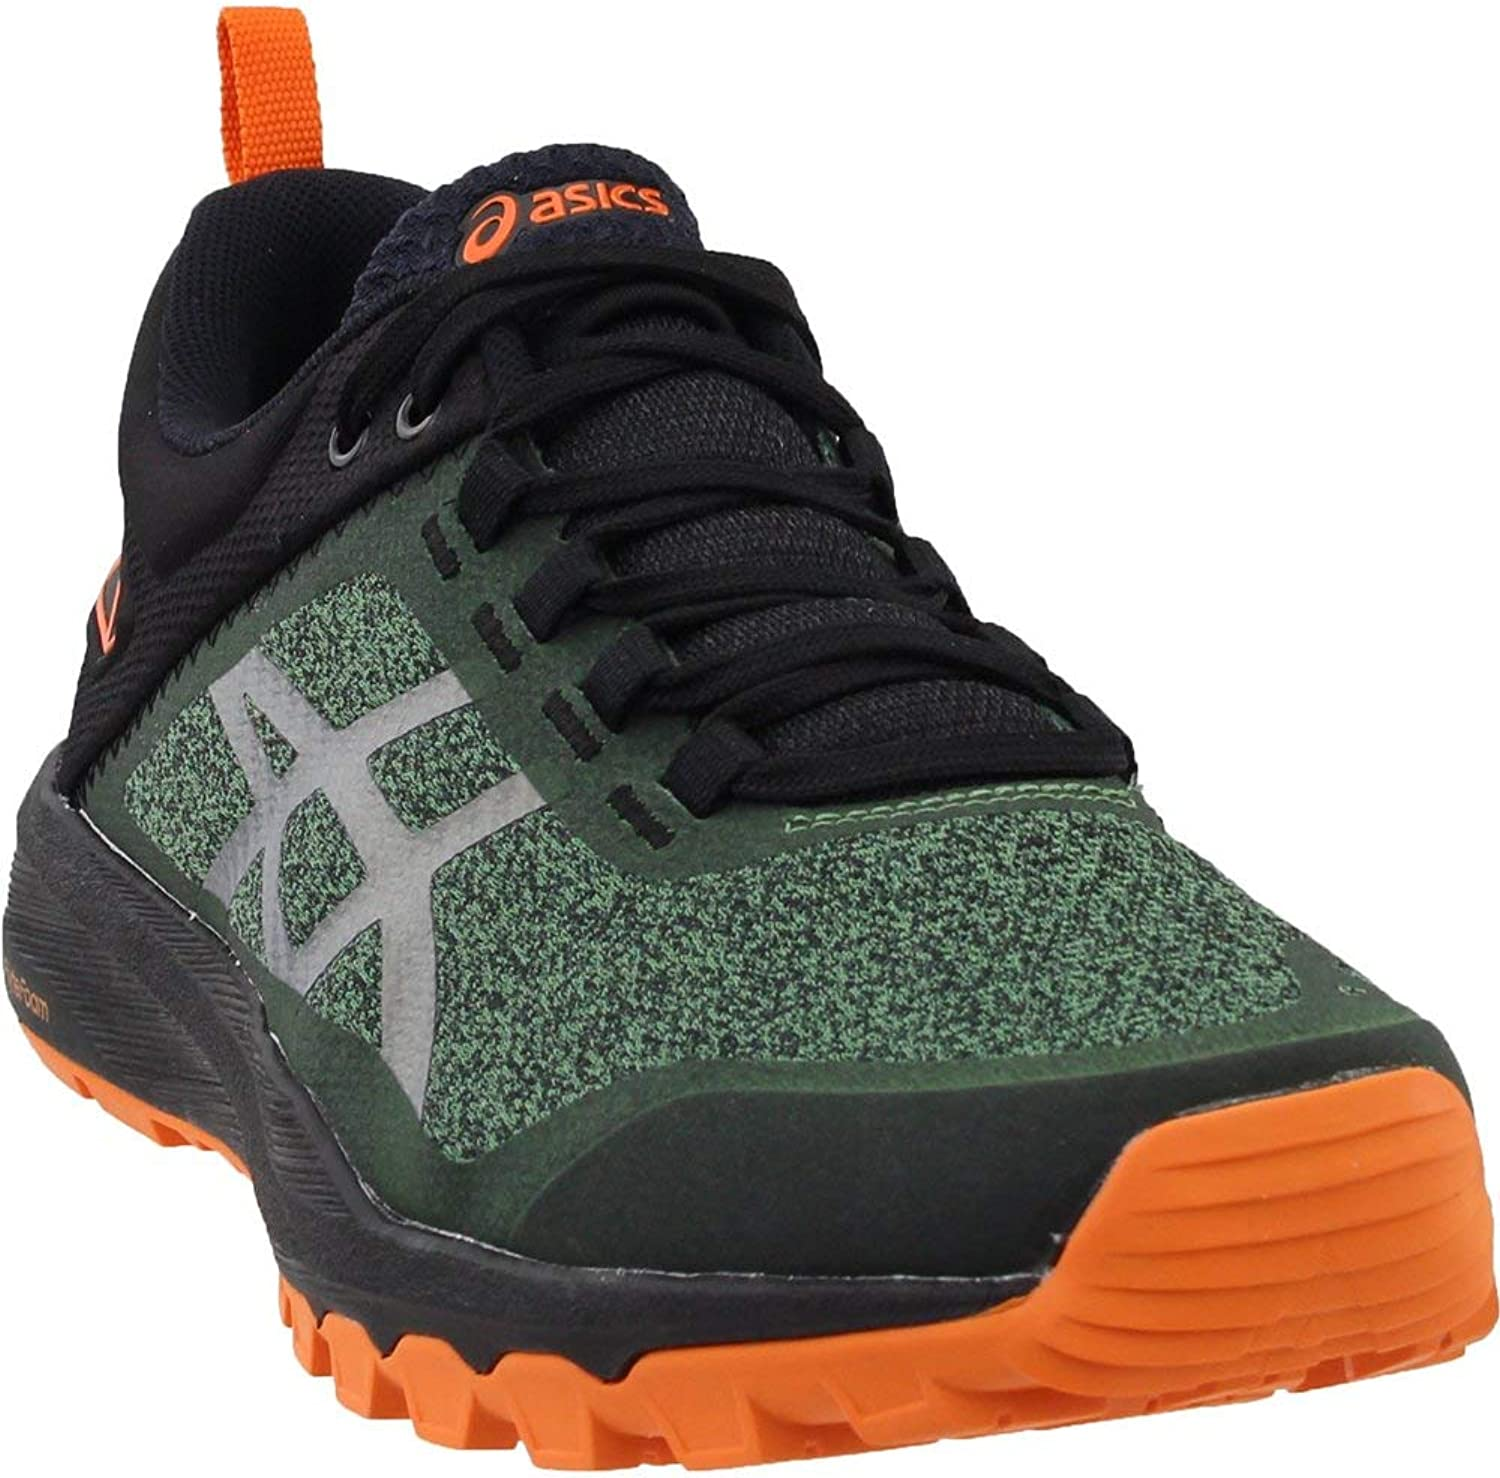 ASICS Gecko Xt Running Men's shoes